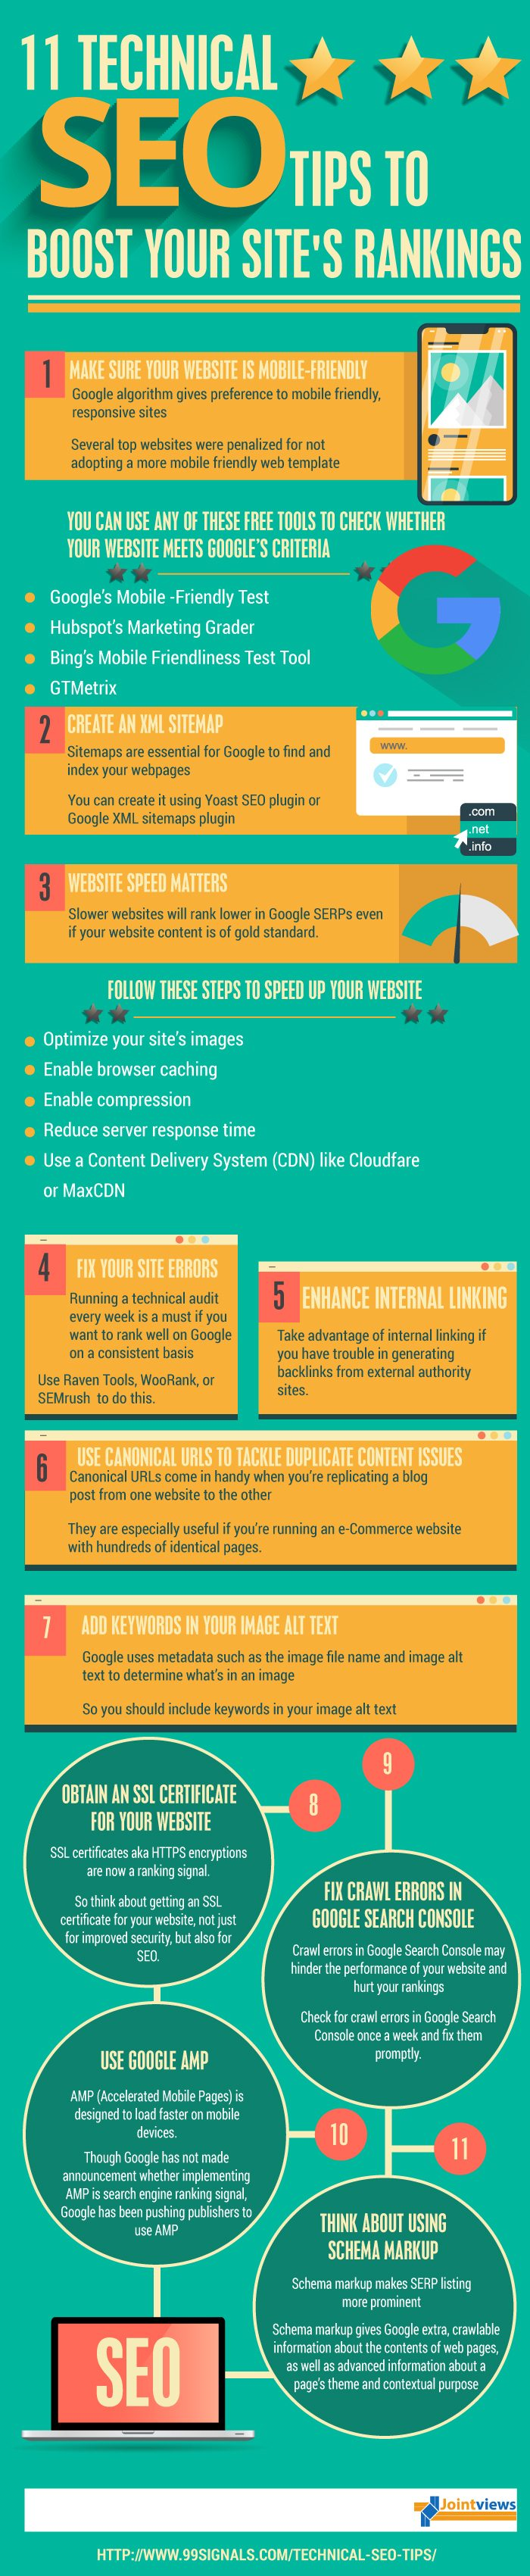 11 Technical SEO Tips to Boost Google Rankings [Infographic] | Social Media Today